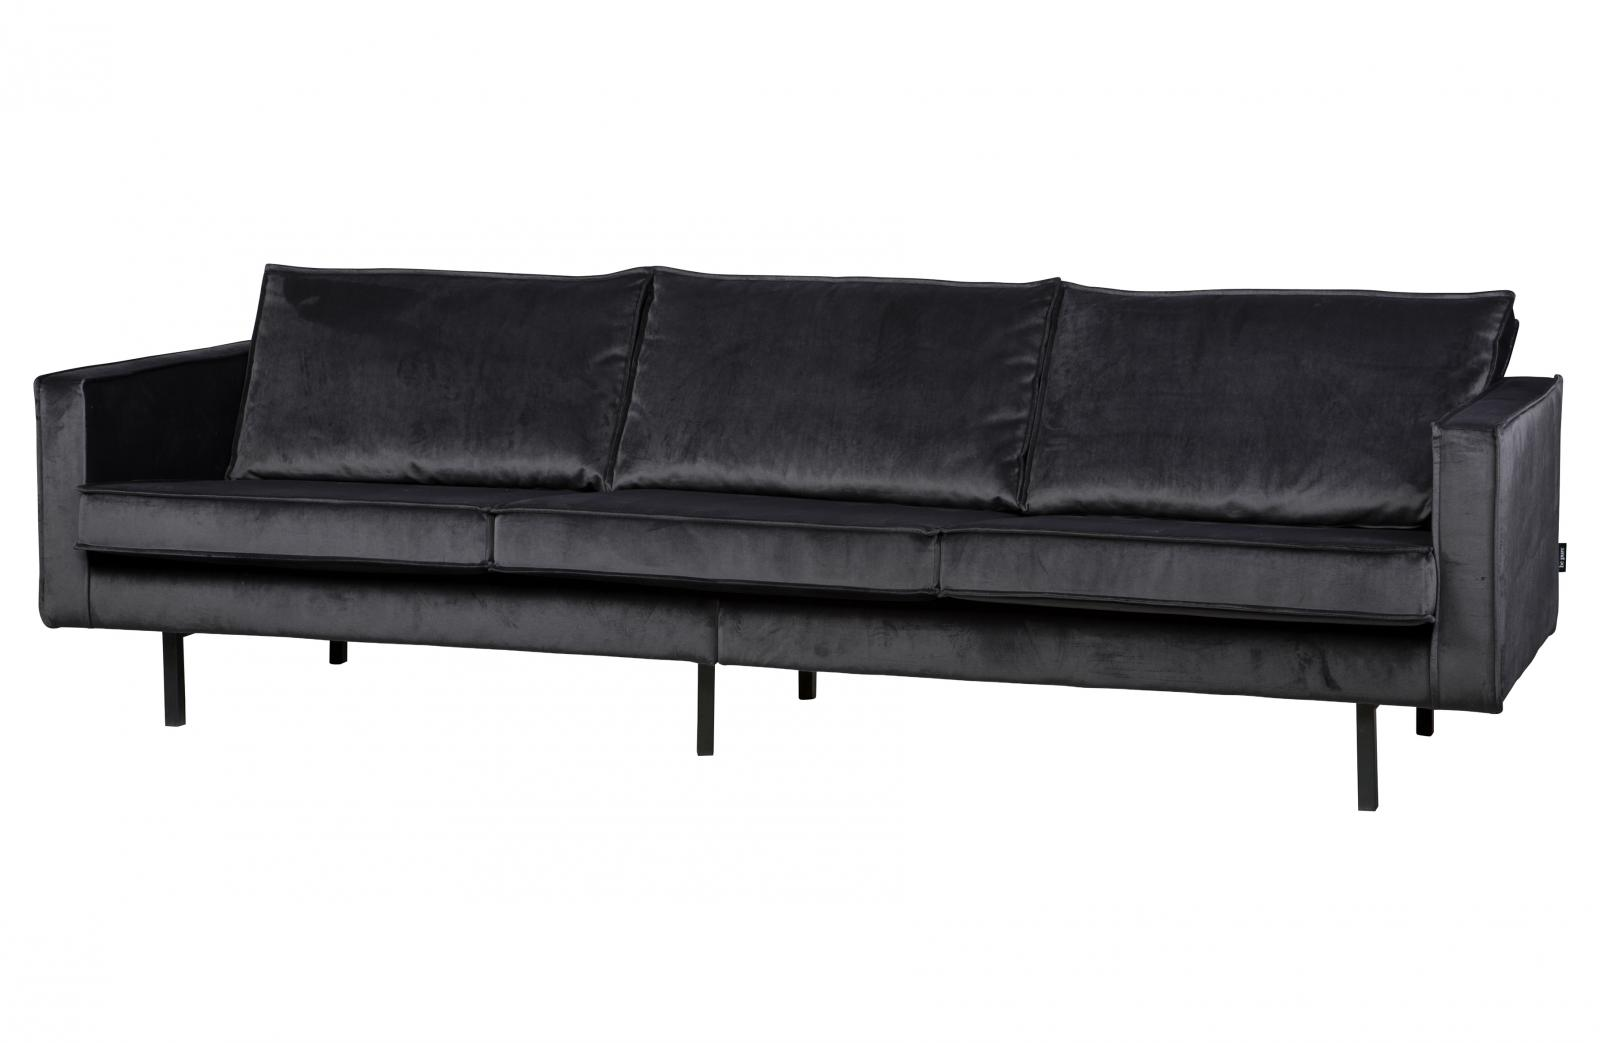 Samtsofa Rodeo Bepurehome Rodeo Velvet Sofa 3 Seater Dark Grey